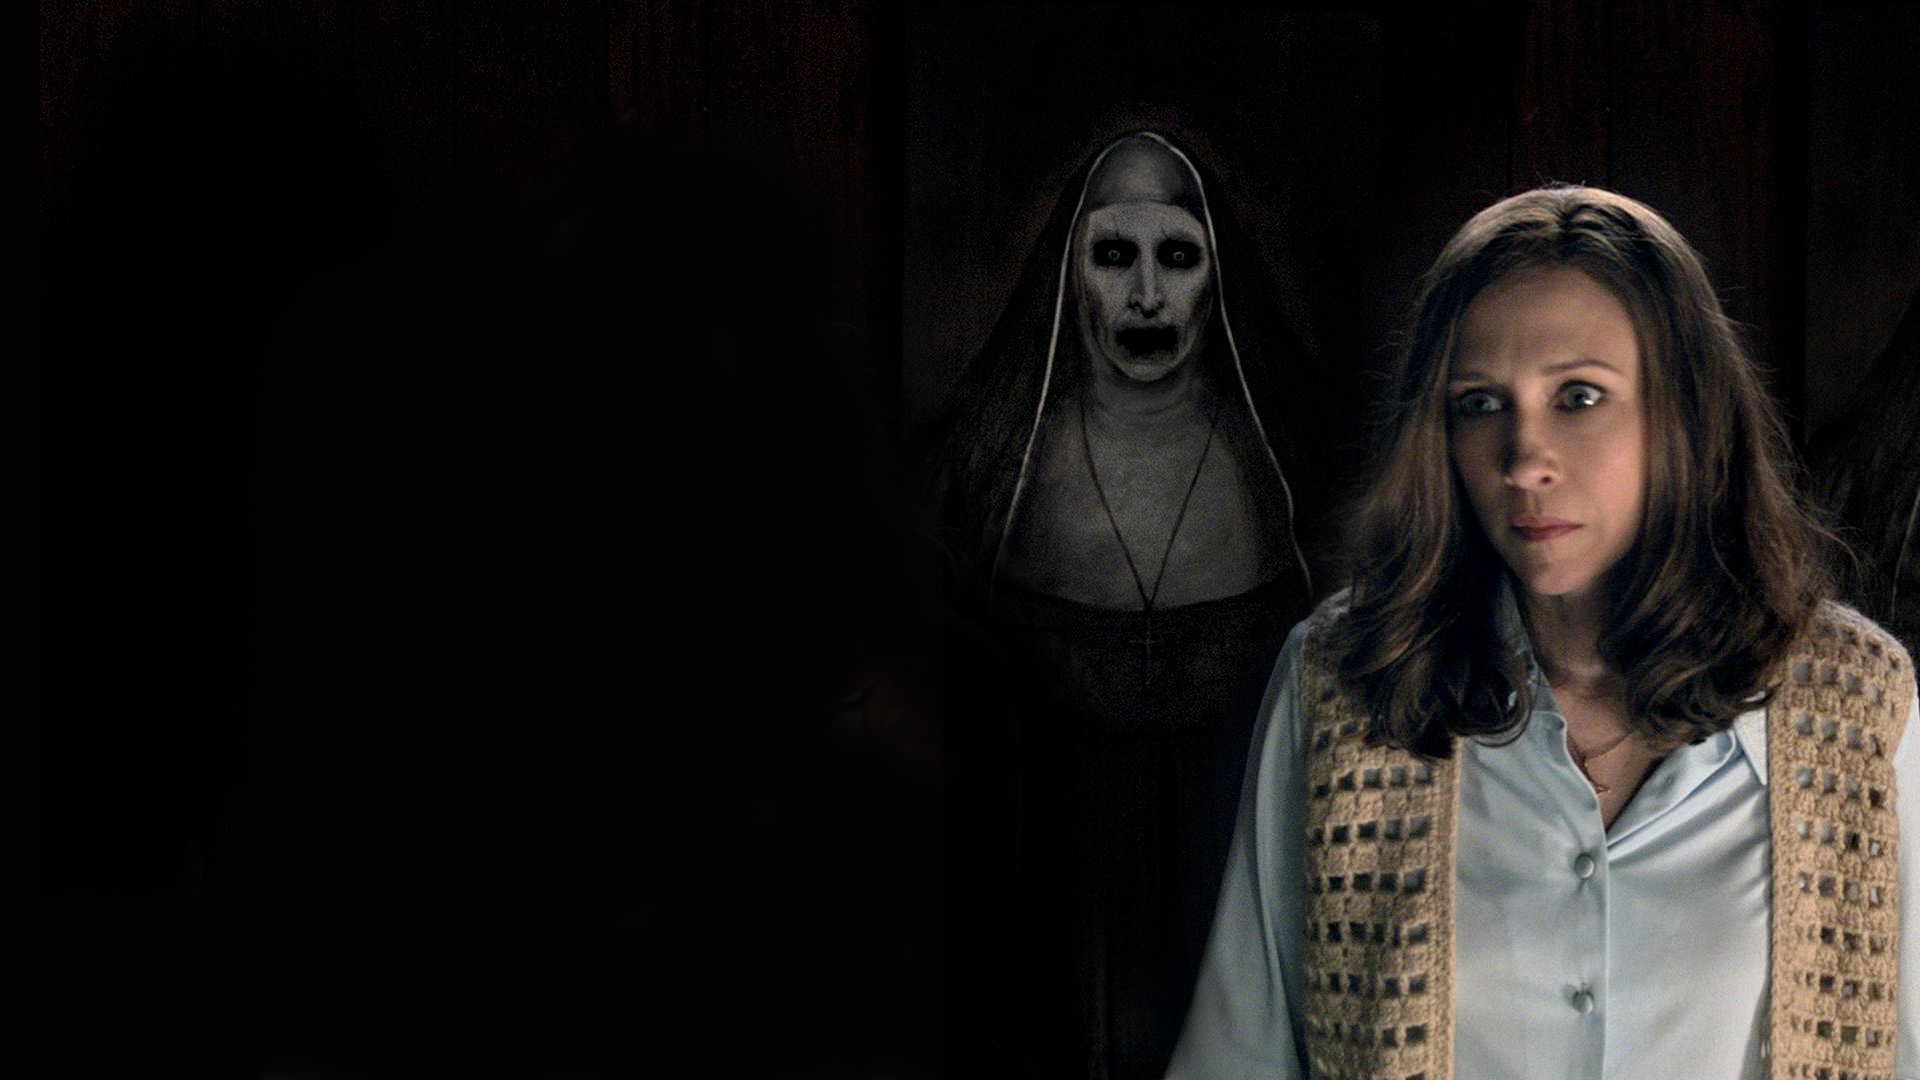 Streama The Conjuring 2